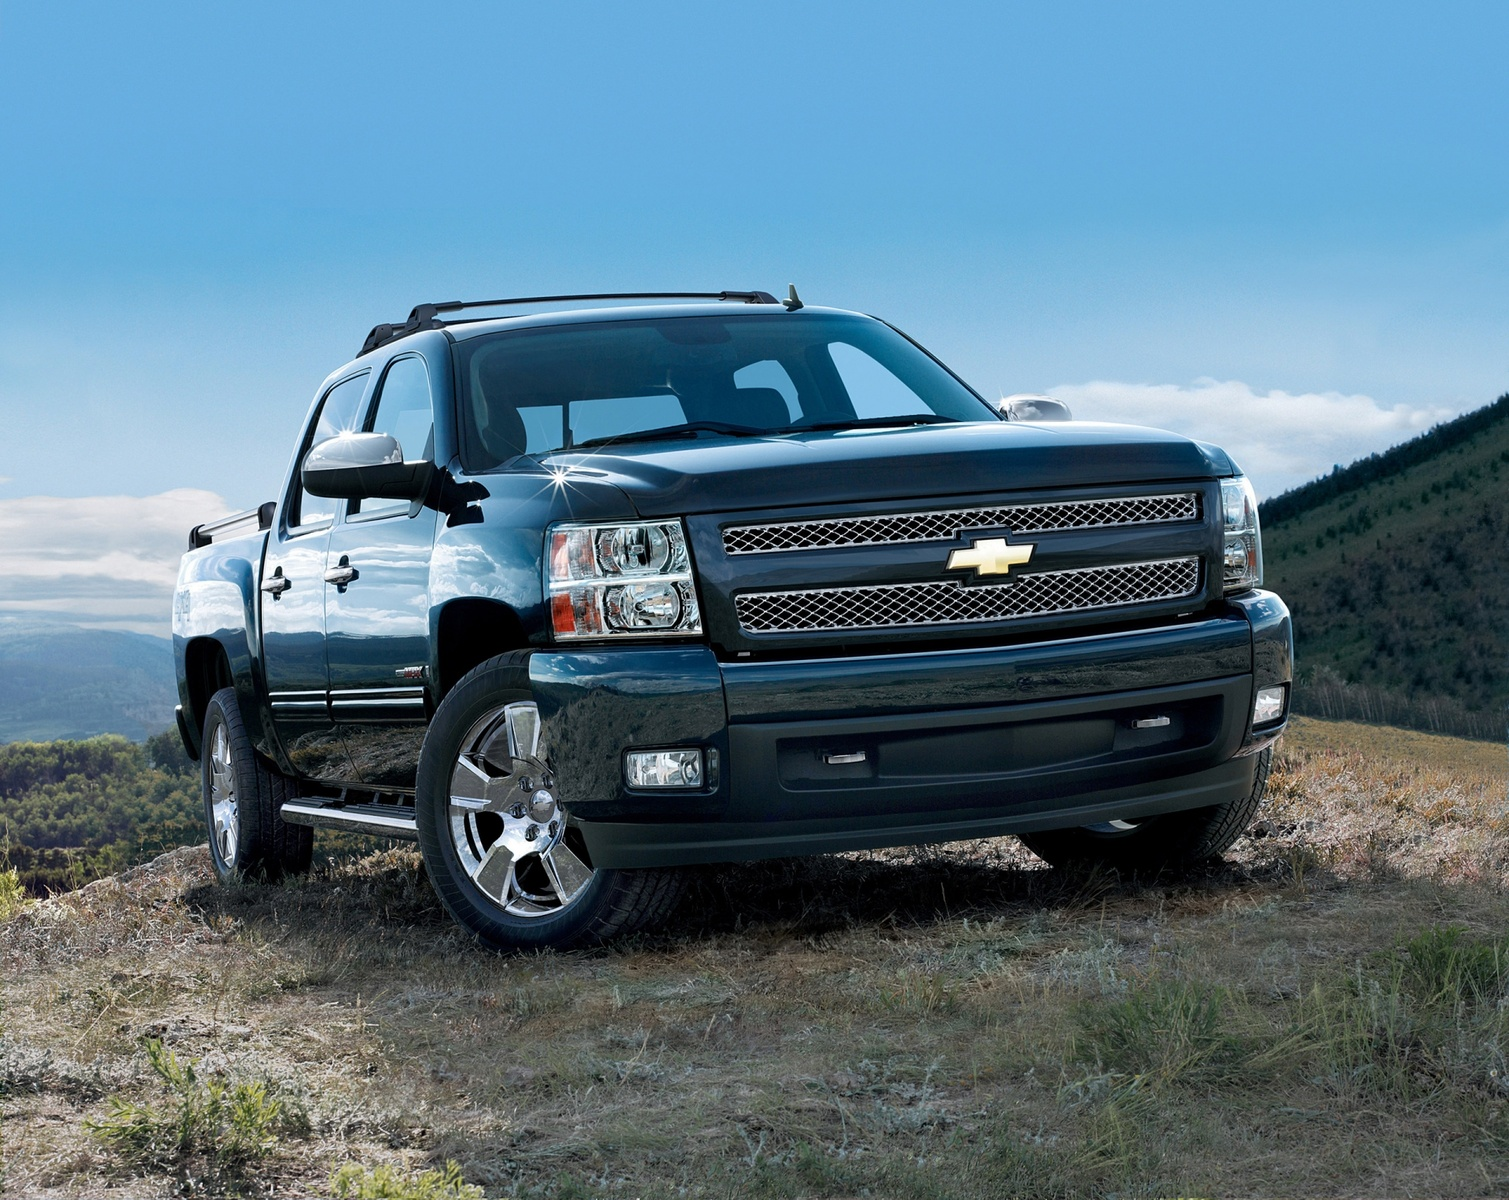 silverado 2007 1500 2008 chevy chevrolet cab crew road wallpapers ltz iphone extended trucks 2009 hd standard 4wd cargurus autoevolution